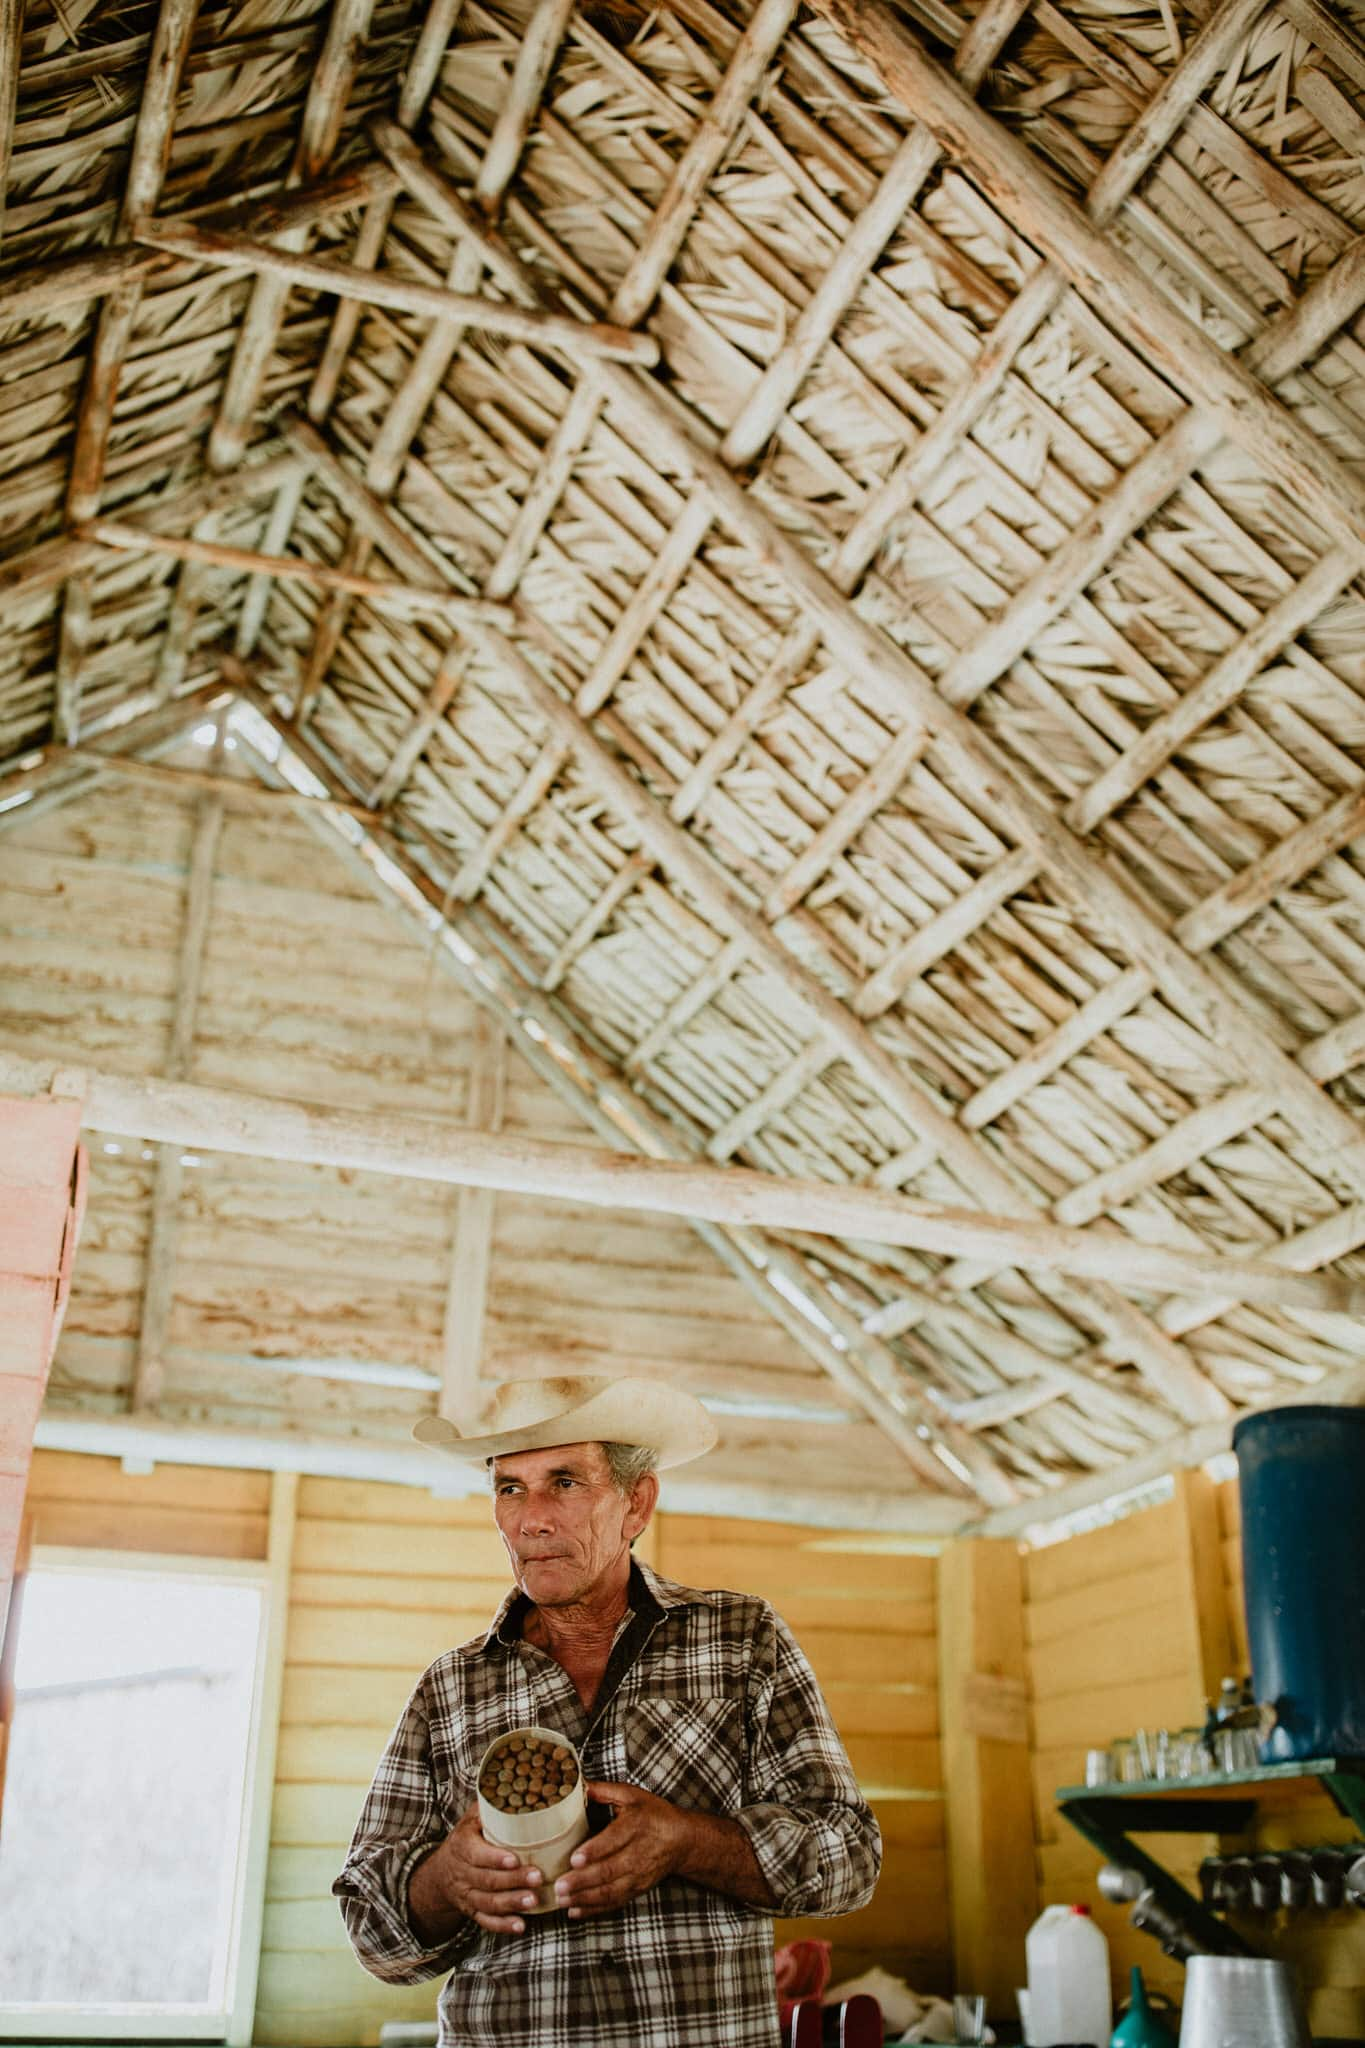 Tobacco farmer with fresh cigars in Vinales, Cuba. Wedding and travel photographer Brent Calis.